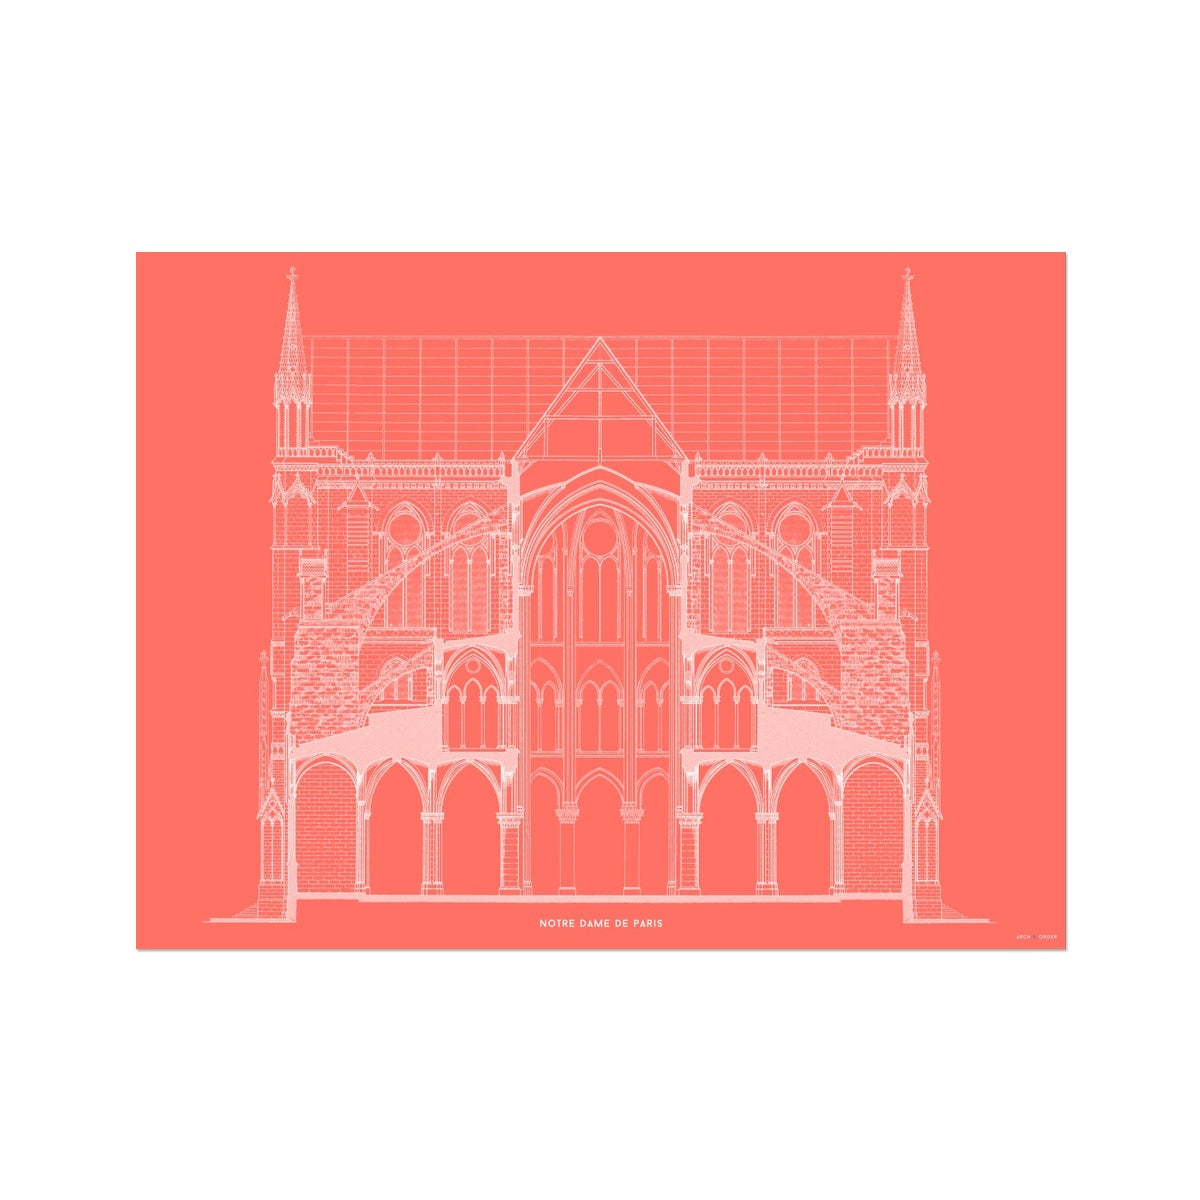 Notre Dame de Paris - Full Cross Section - Red -  Etching Paper Print